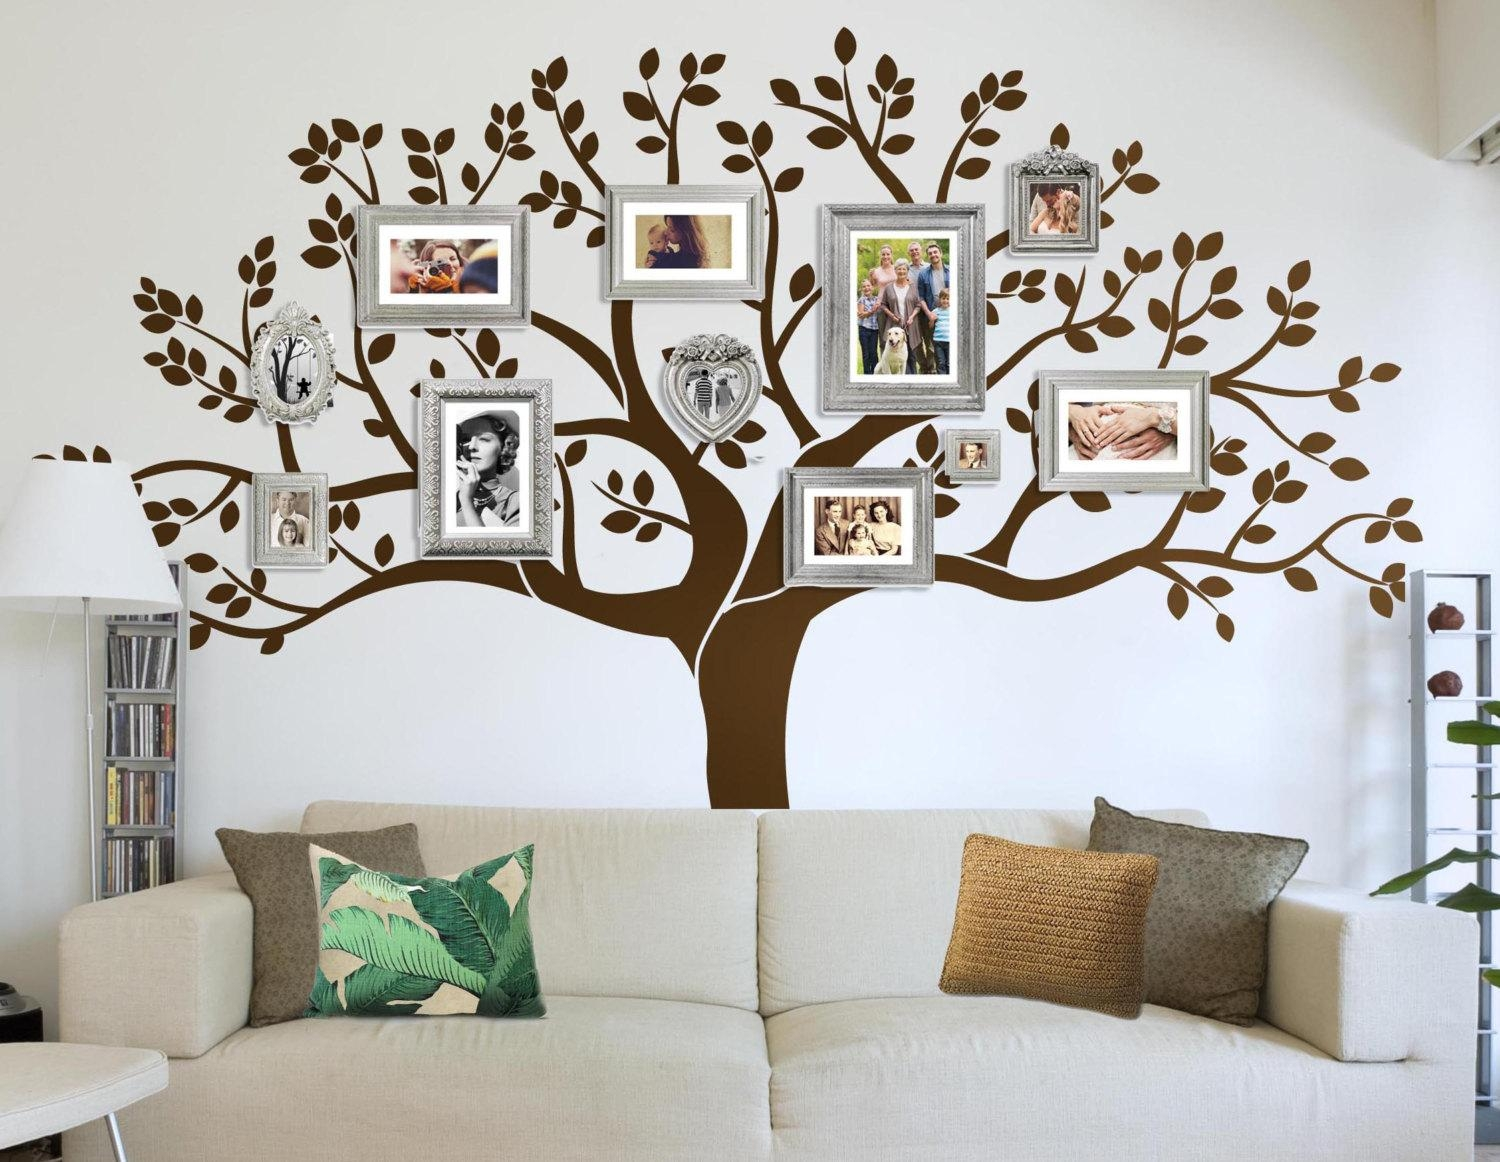 Large Family Tree Wall Decal | Roselawnlutheran Regarding Wall Art Deco Decals (Image 9 of 20)